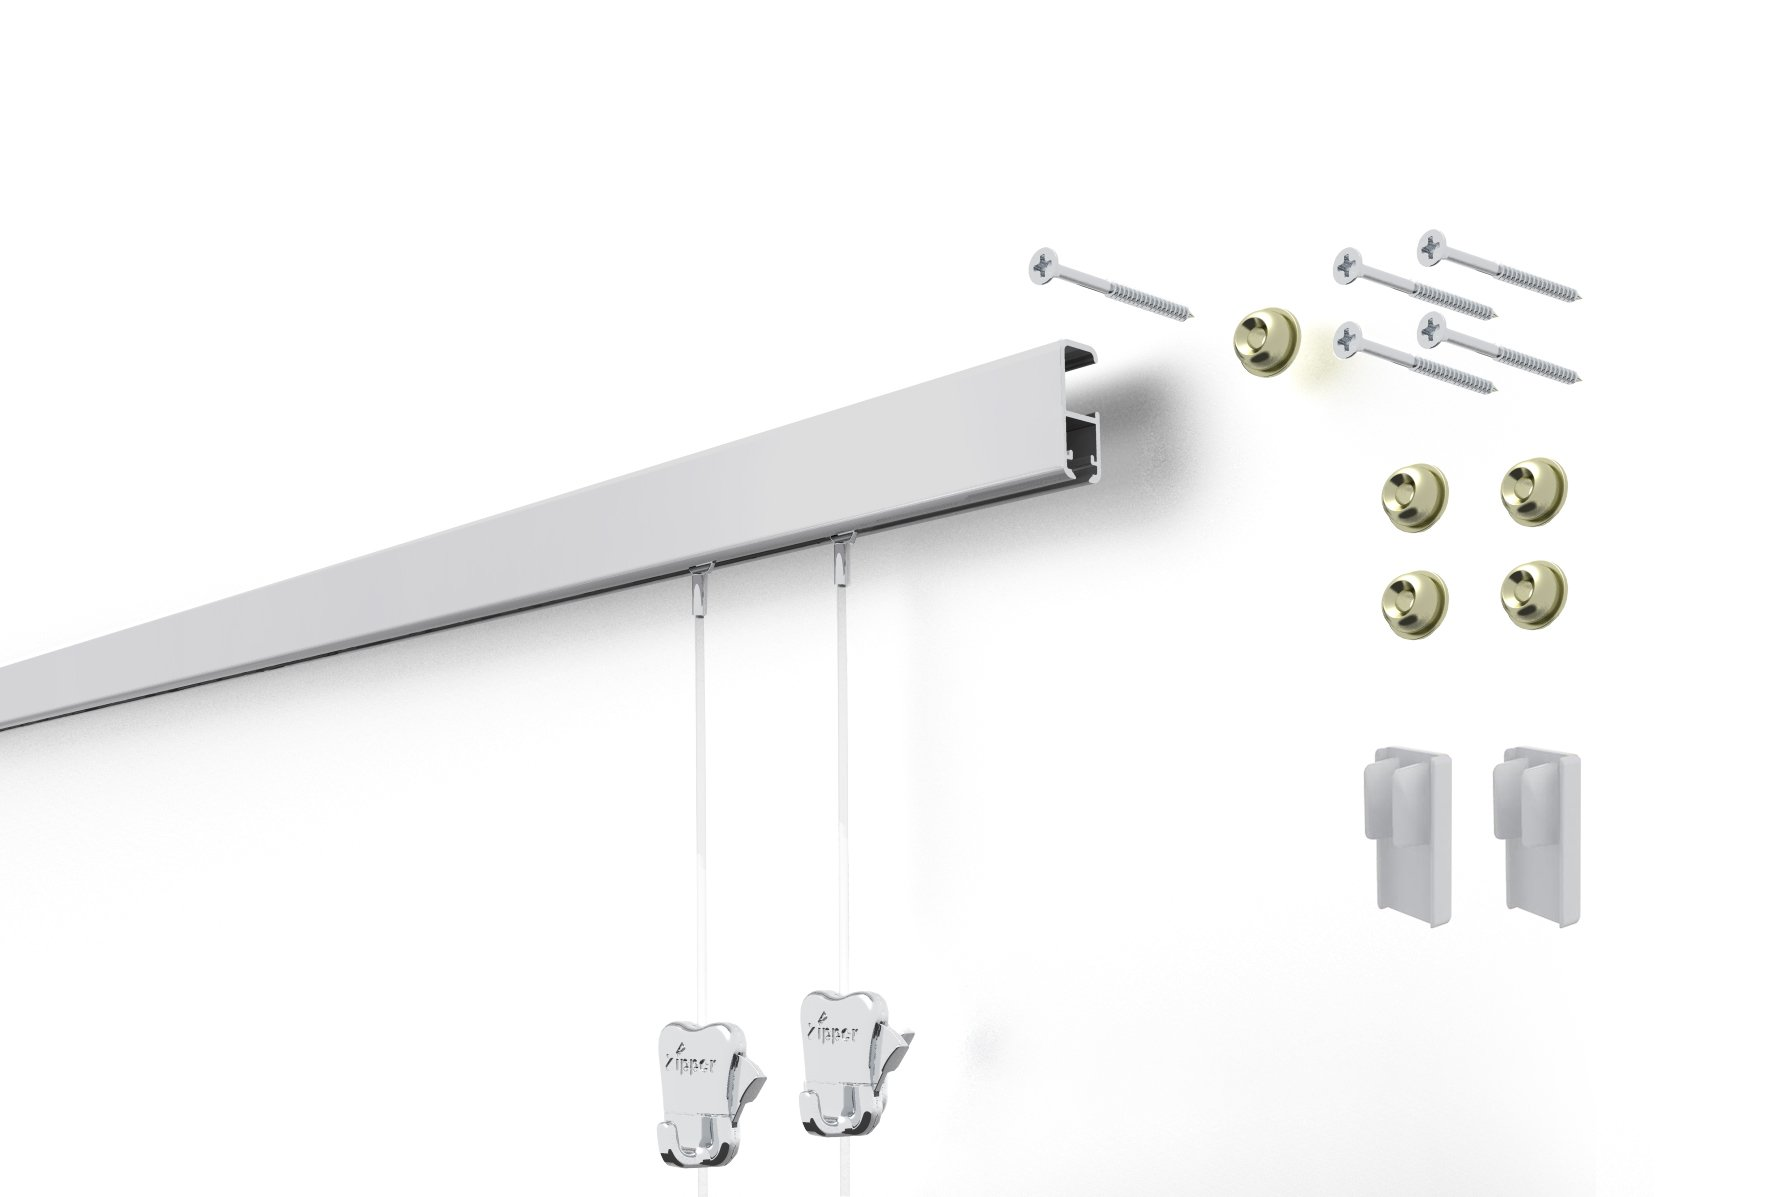 STAS Cliprail Pro Picture Hanging System- Complete Kit (1 rail 2 hooks and cords, matte silver rails)